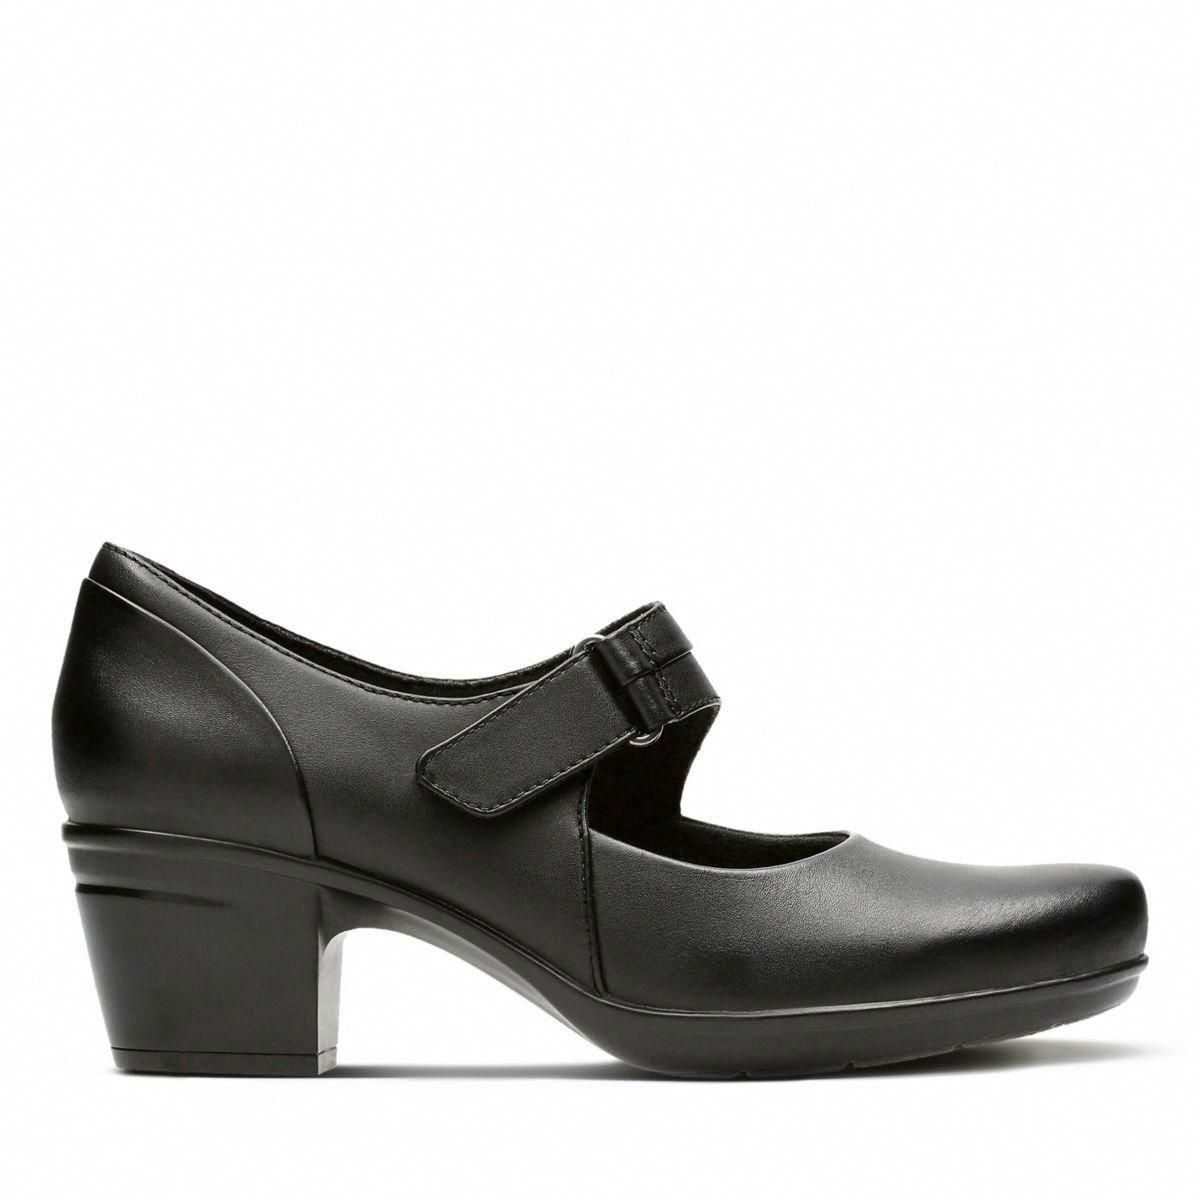 f6c1a584f Clarks Emslie Lulin - Womens Shoes Black Leather 8.5 E (Wide) Out Of Stock   womensshoes  NikeWomensshoes6Pm